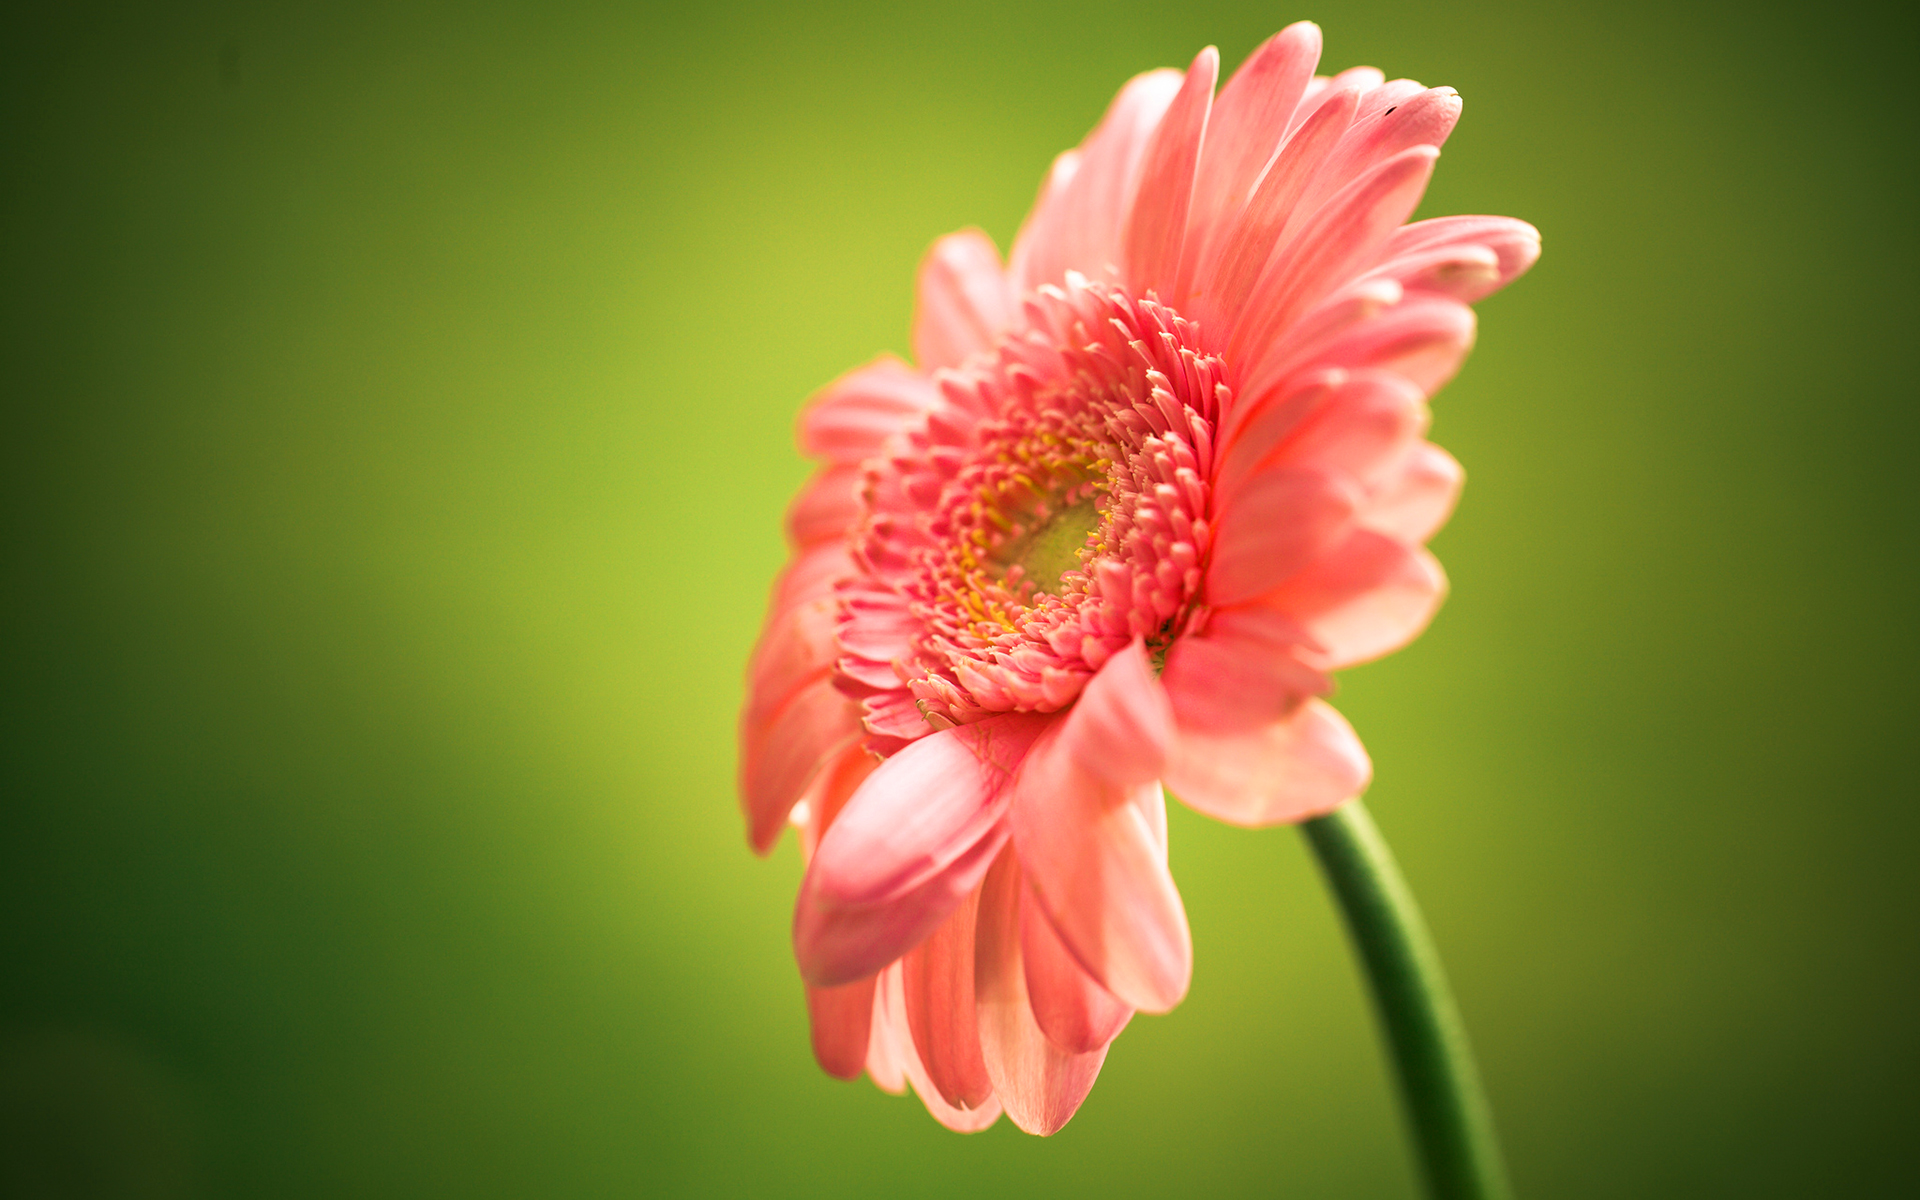 Single Flower Wallpapers: Pink Gerbera Flower Widescreen - HD Desktop Wallpapers